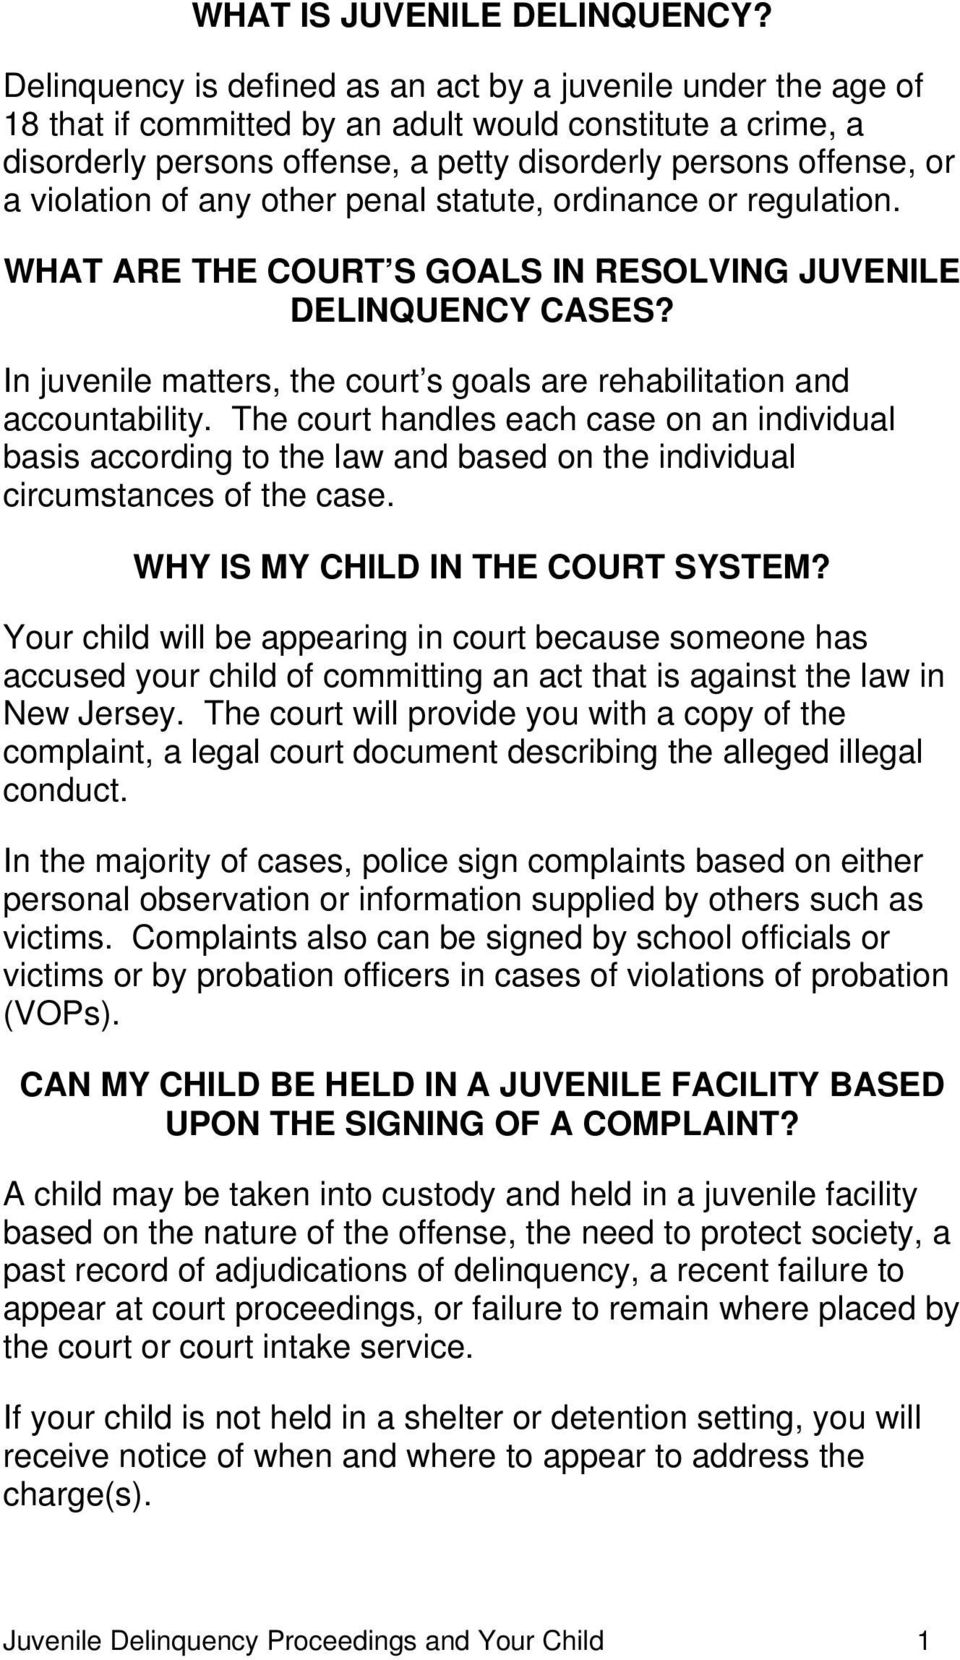 violation of any other penal statute, ordinance or regulation. WHAT ARE THE COURT S GOALS IN RESOLVING JUVENILE DELINQUENCY CASES?